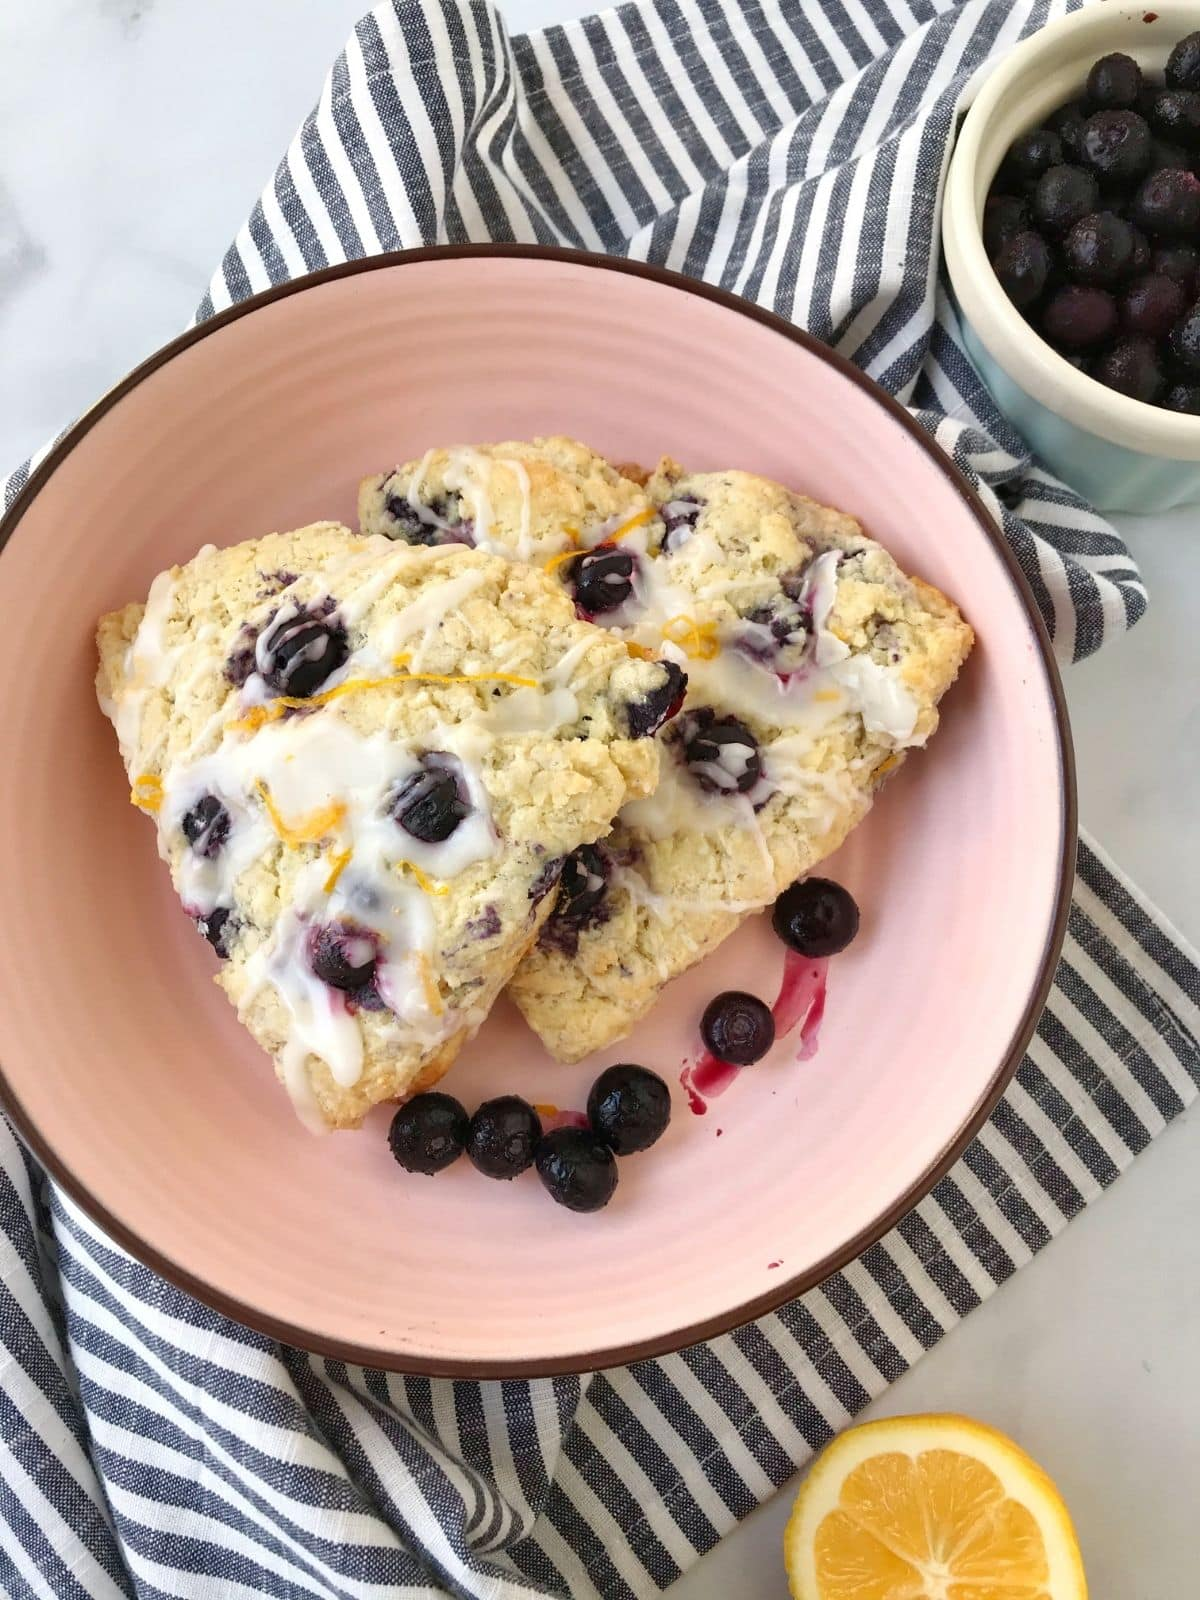 scones in a dish garnished with blueberries